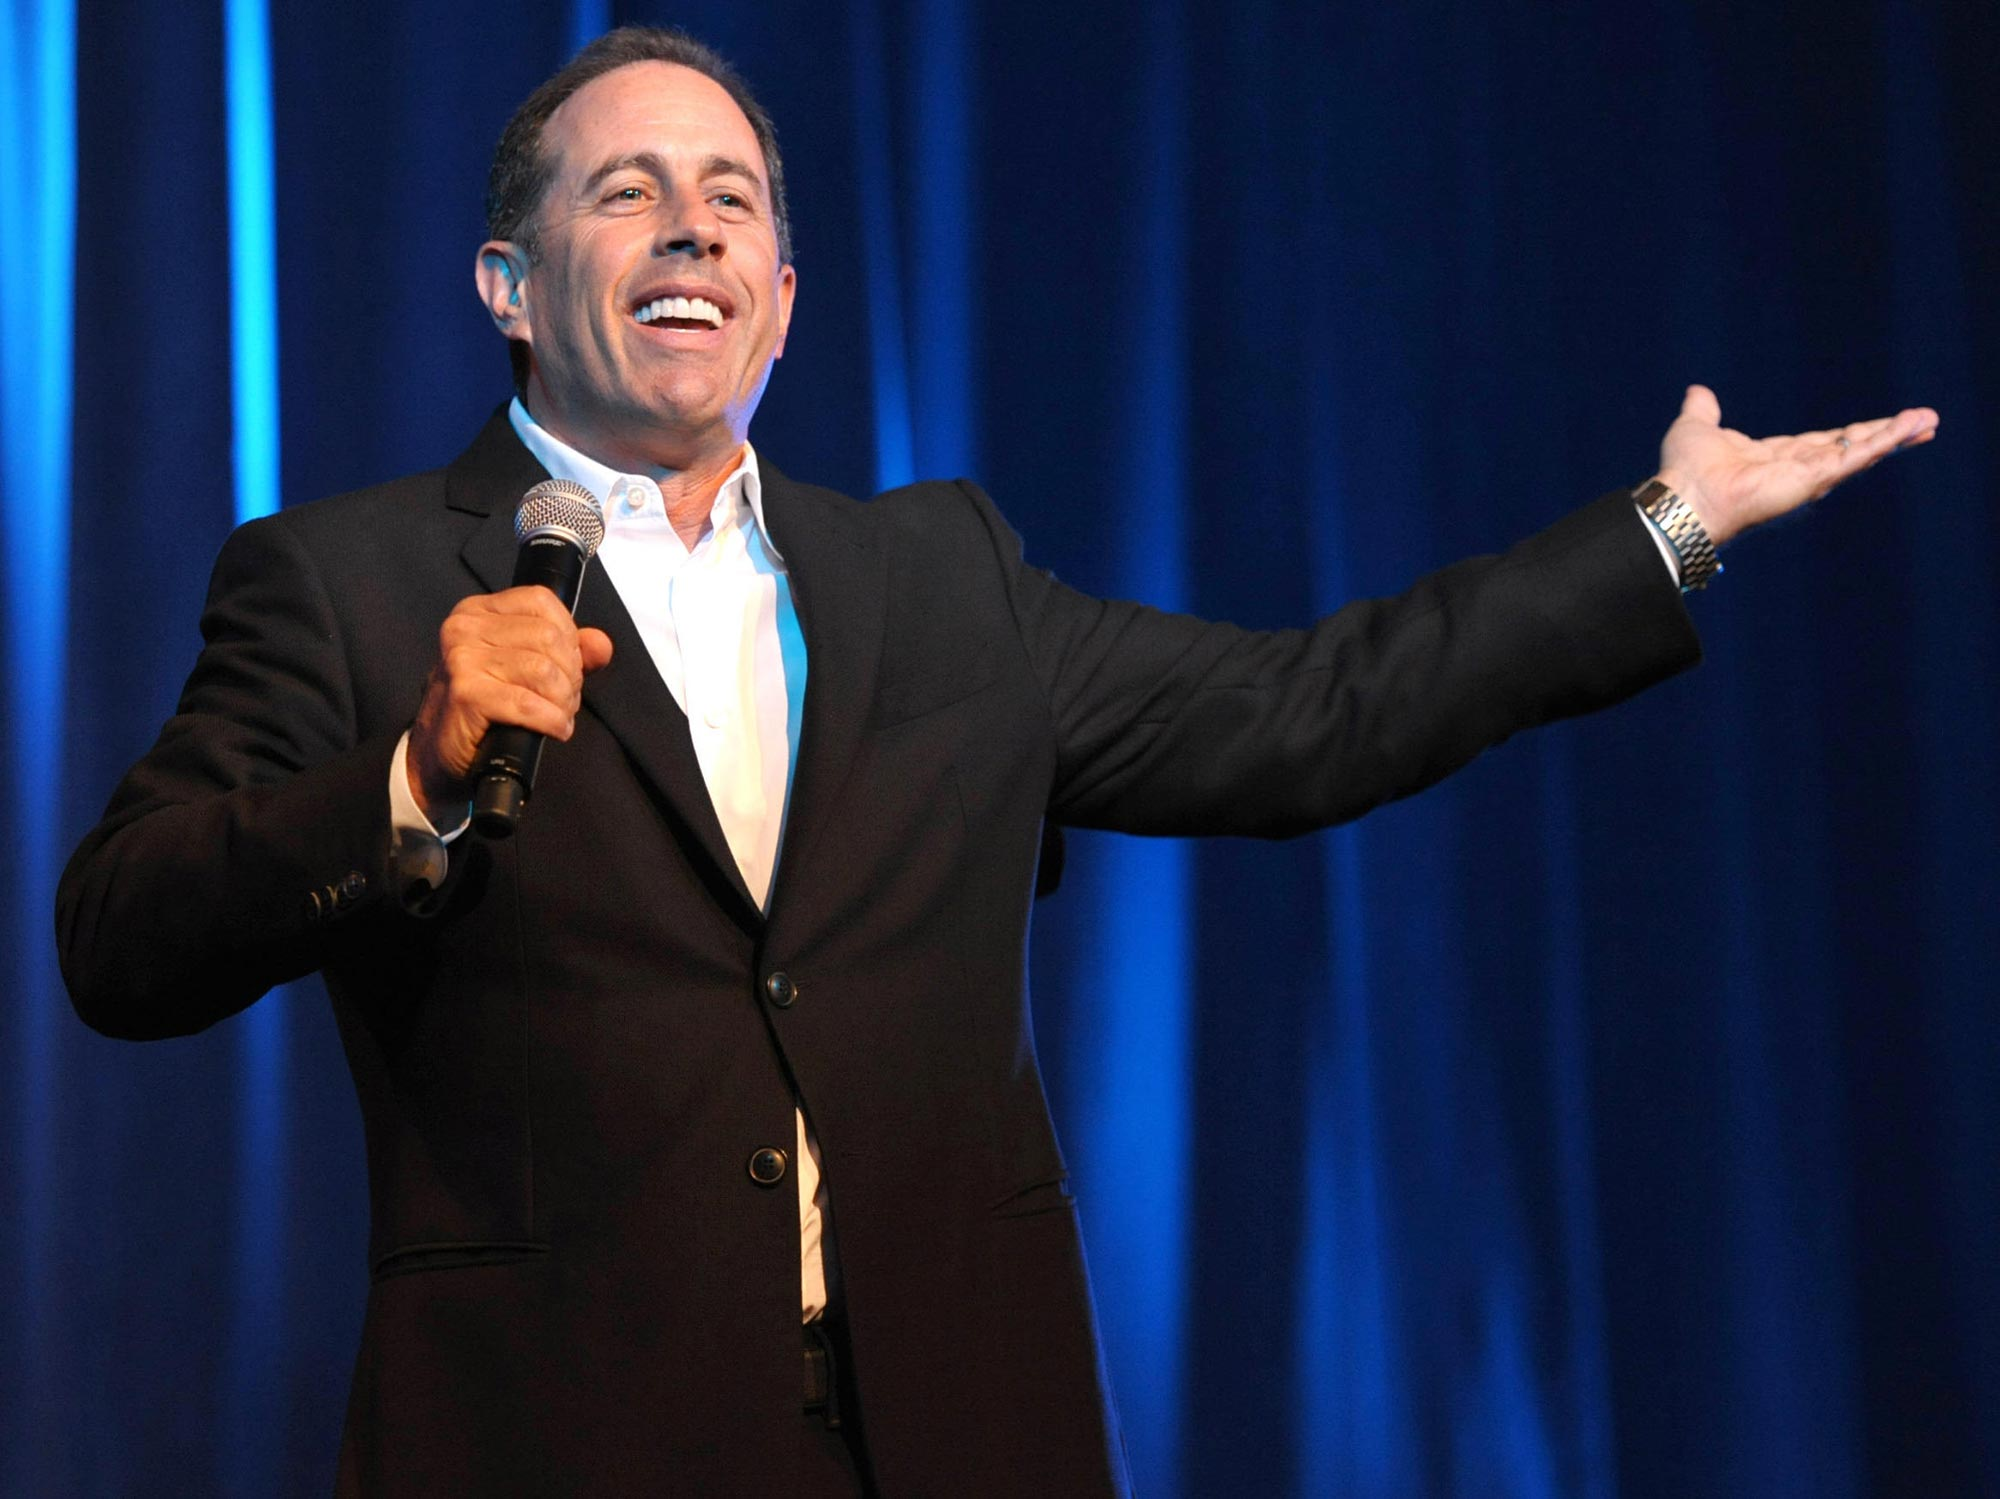 Jerry Seinfeld Performs at a David Lynch Foundation Event